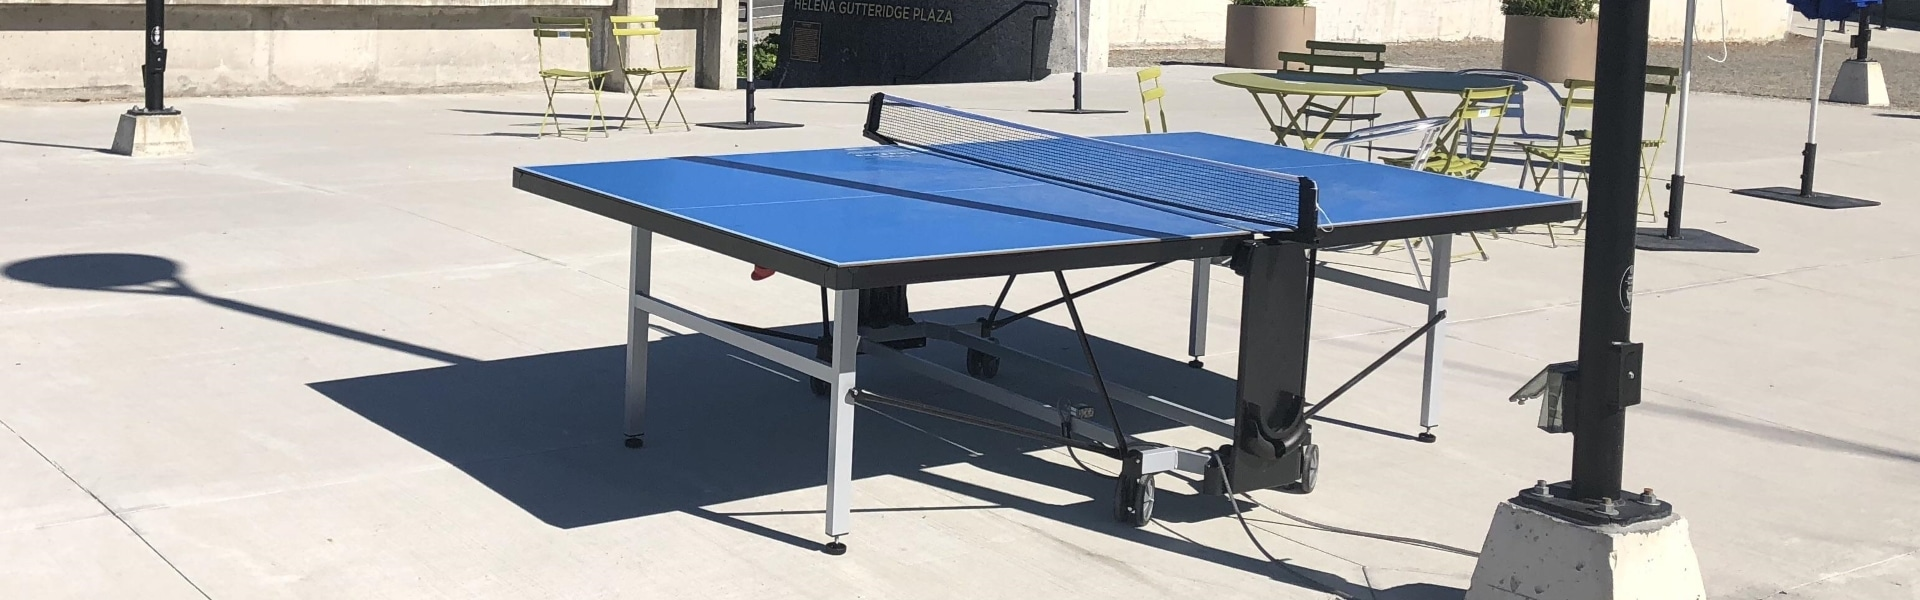 7 Best Outdoor Ping Pong Tables